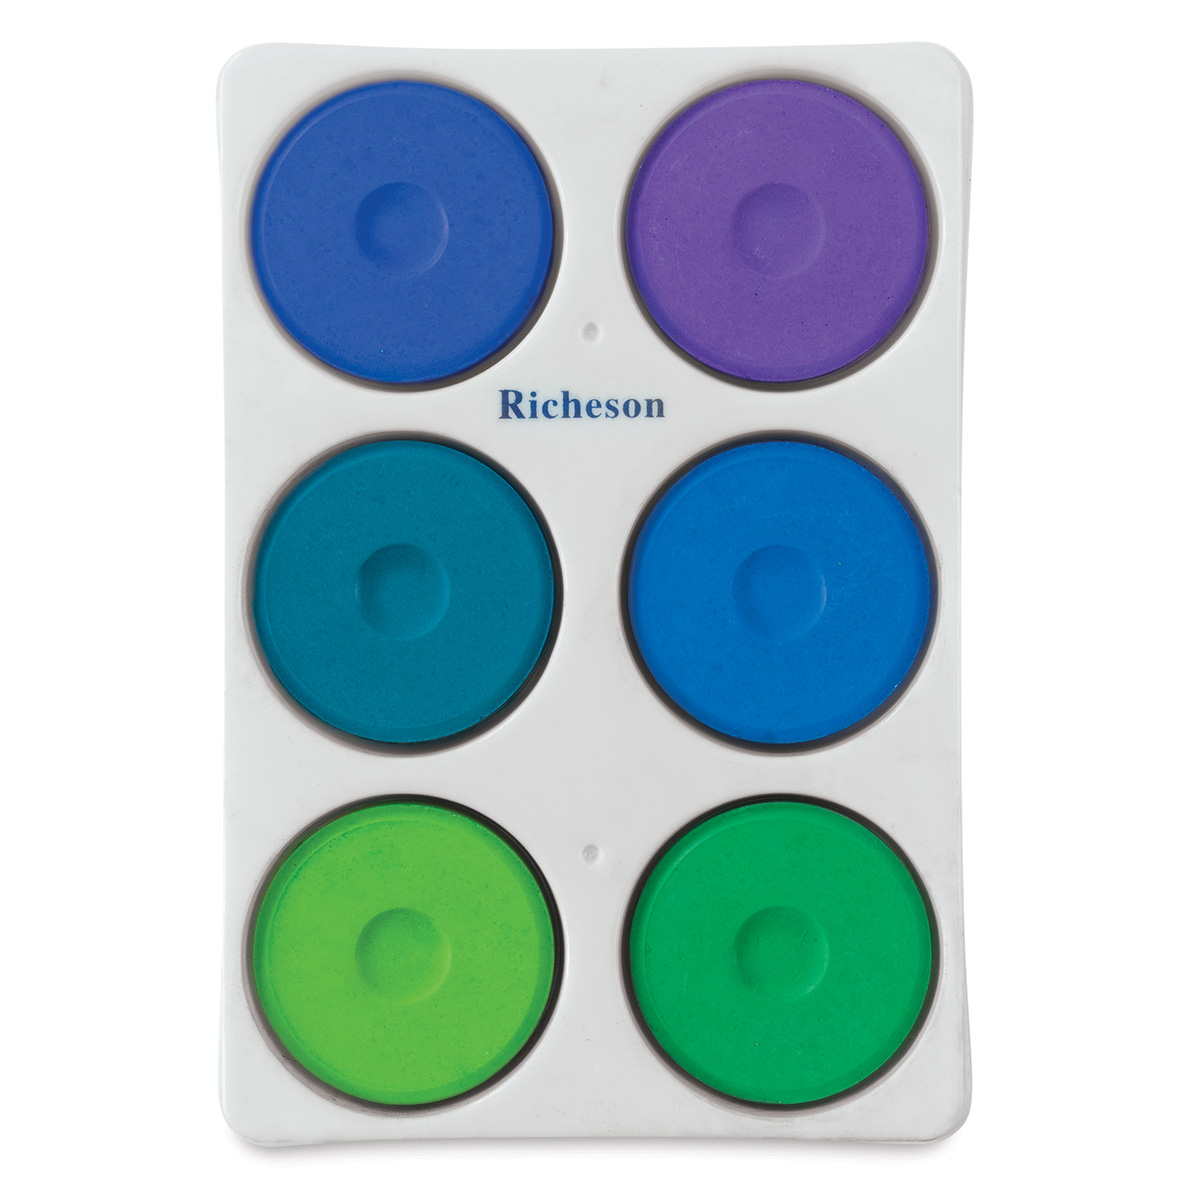 Richeson Tempera Cakes and Sets - Set of 6 Cool Colors